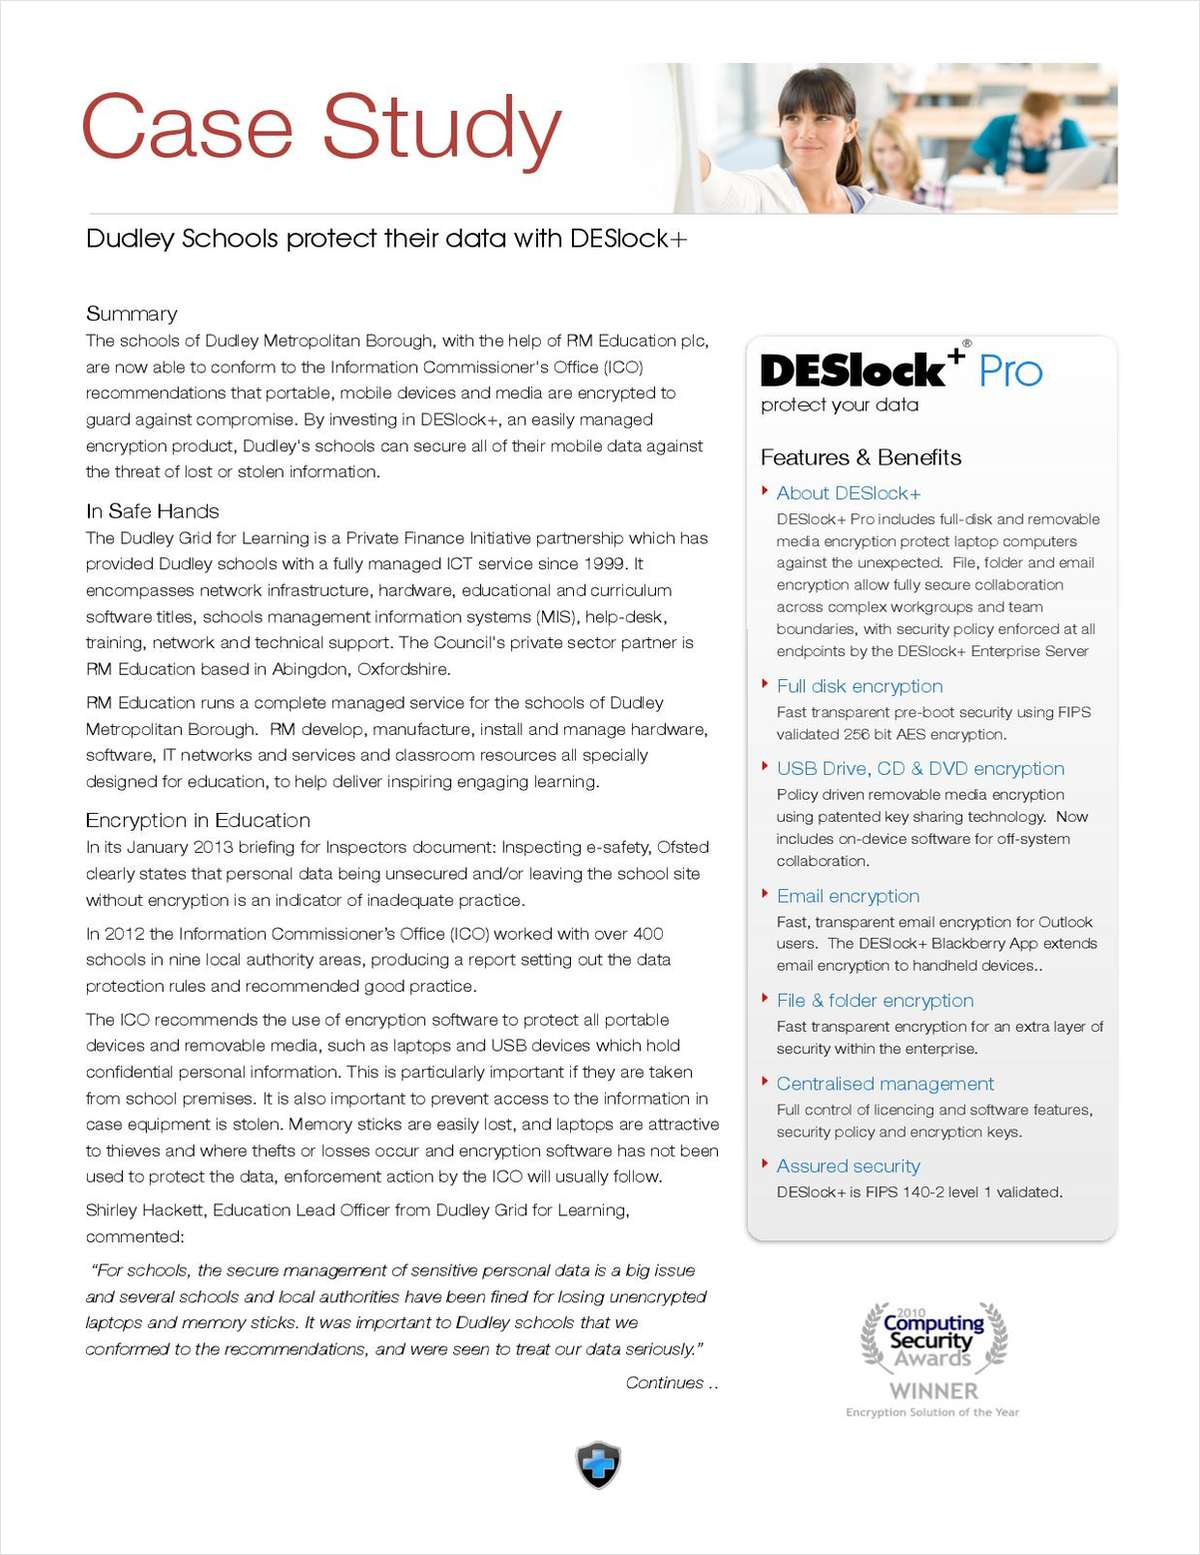 Dudley Schools protect their data with DESlock+